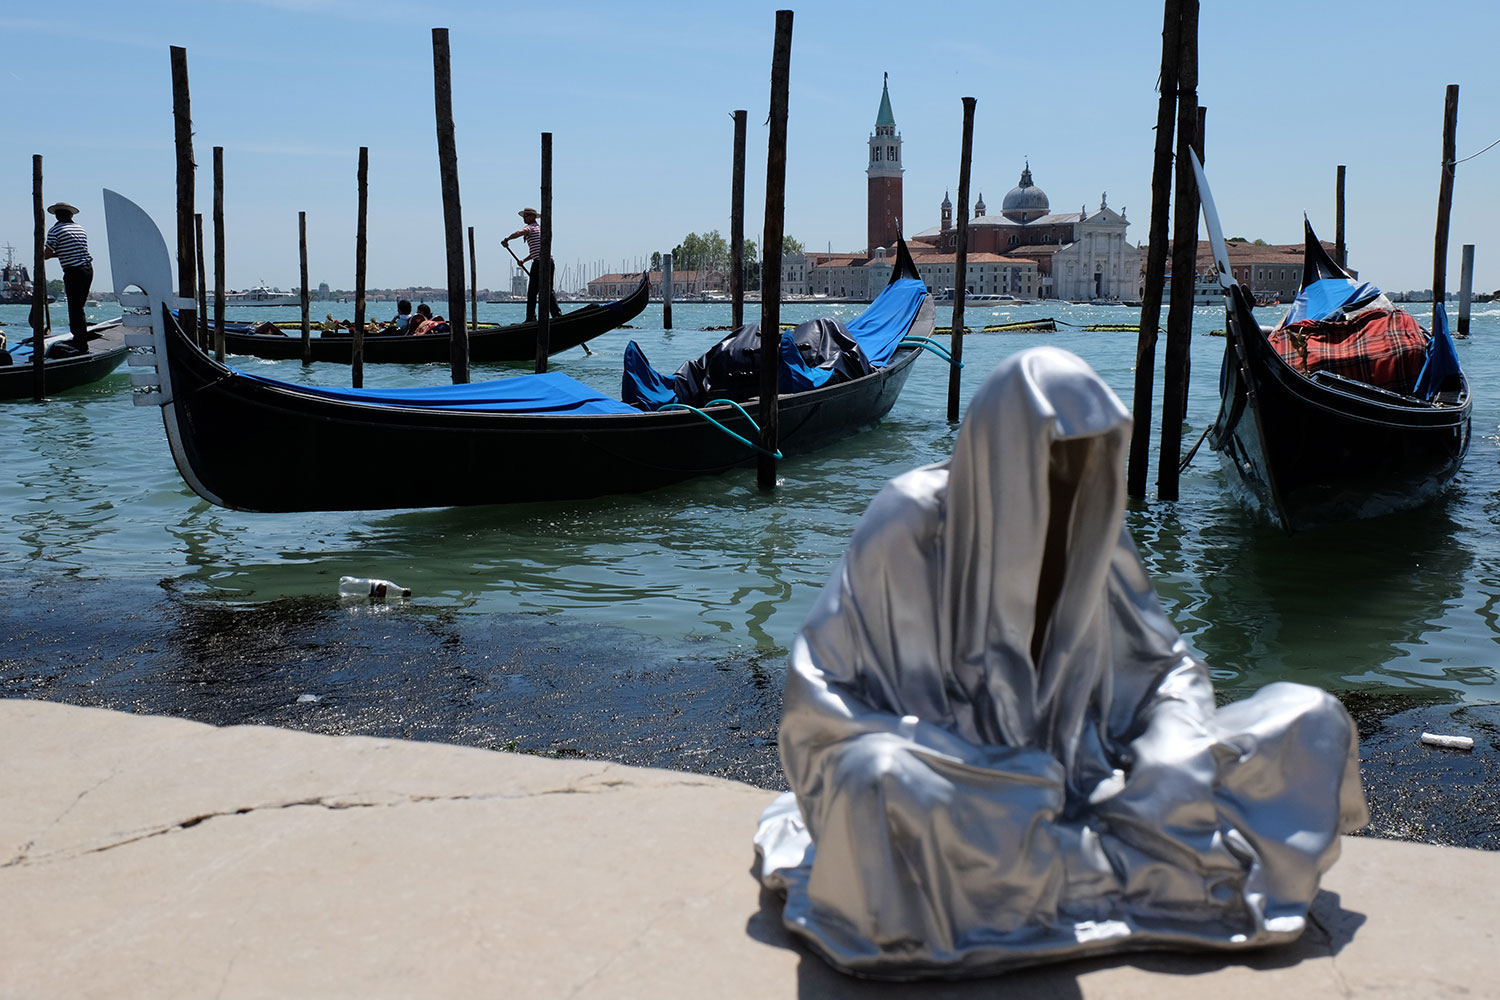 venice-biennale-venezia-biennial-guardians-of-time-manfred-kili-kielnhofer-contemporary-art-sculpture-arts-arte-design-statue-show-1997